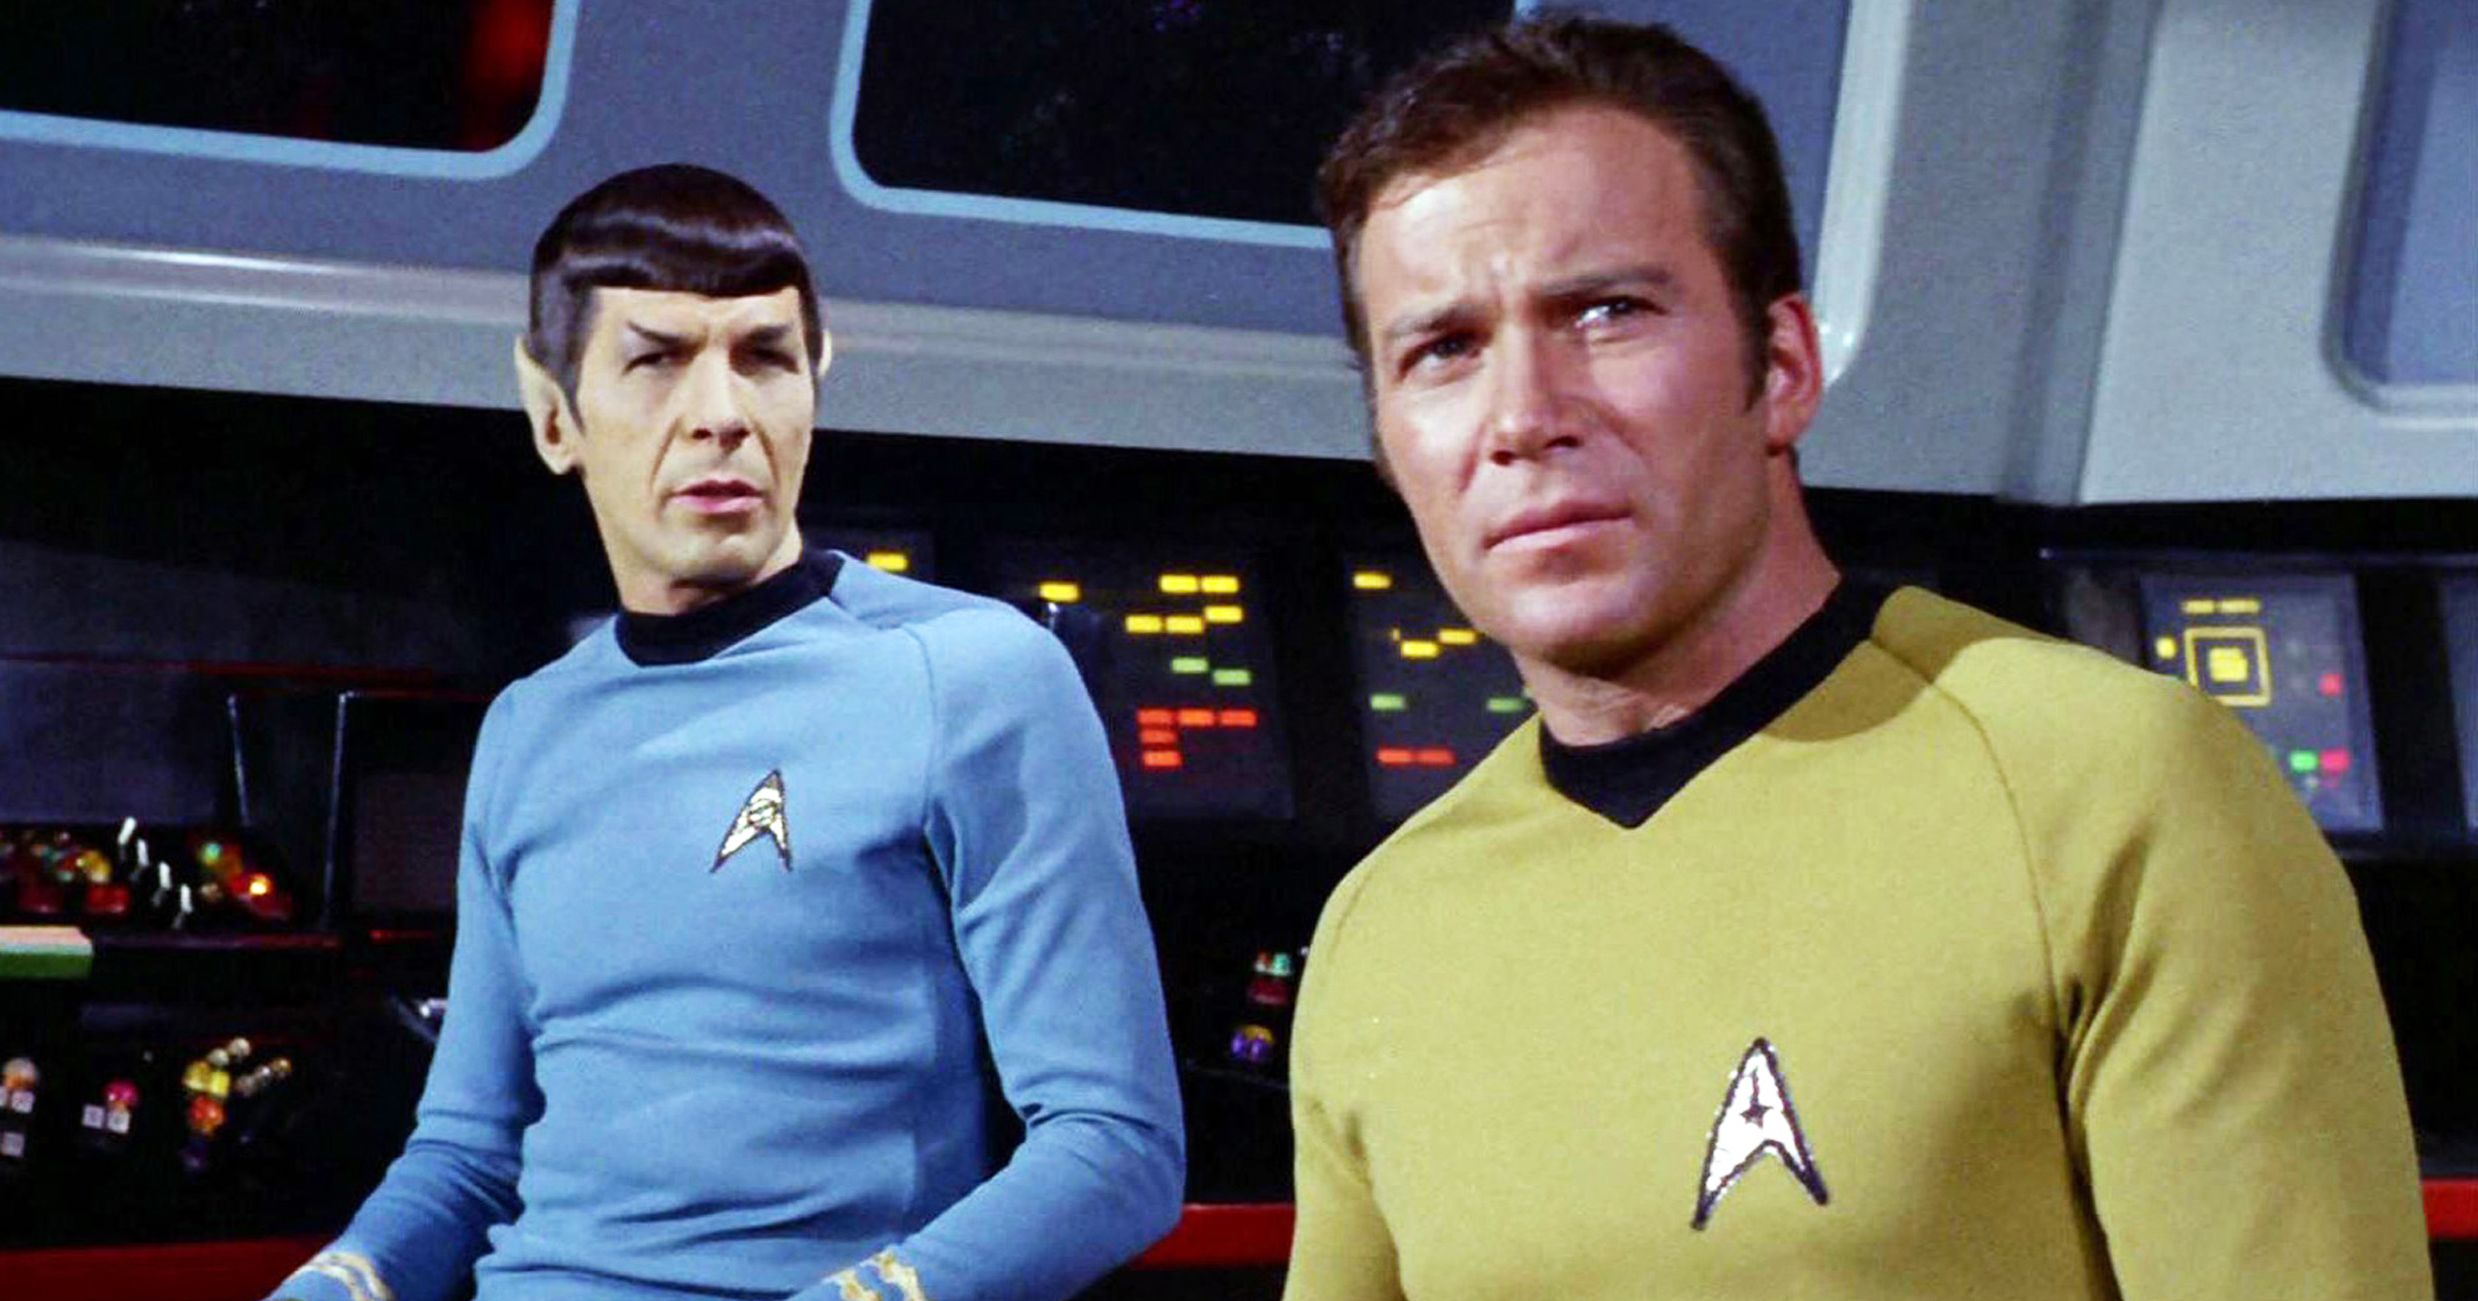 Captain Kirk and Spock on the aircraft